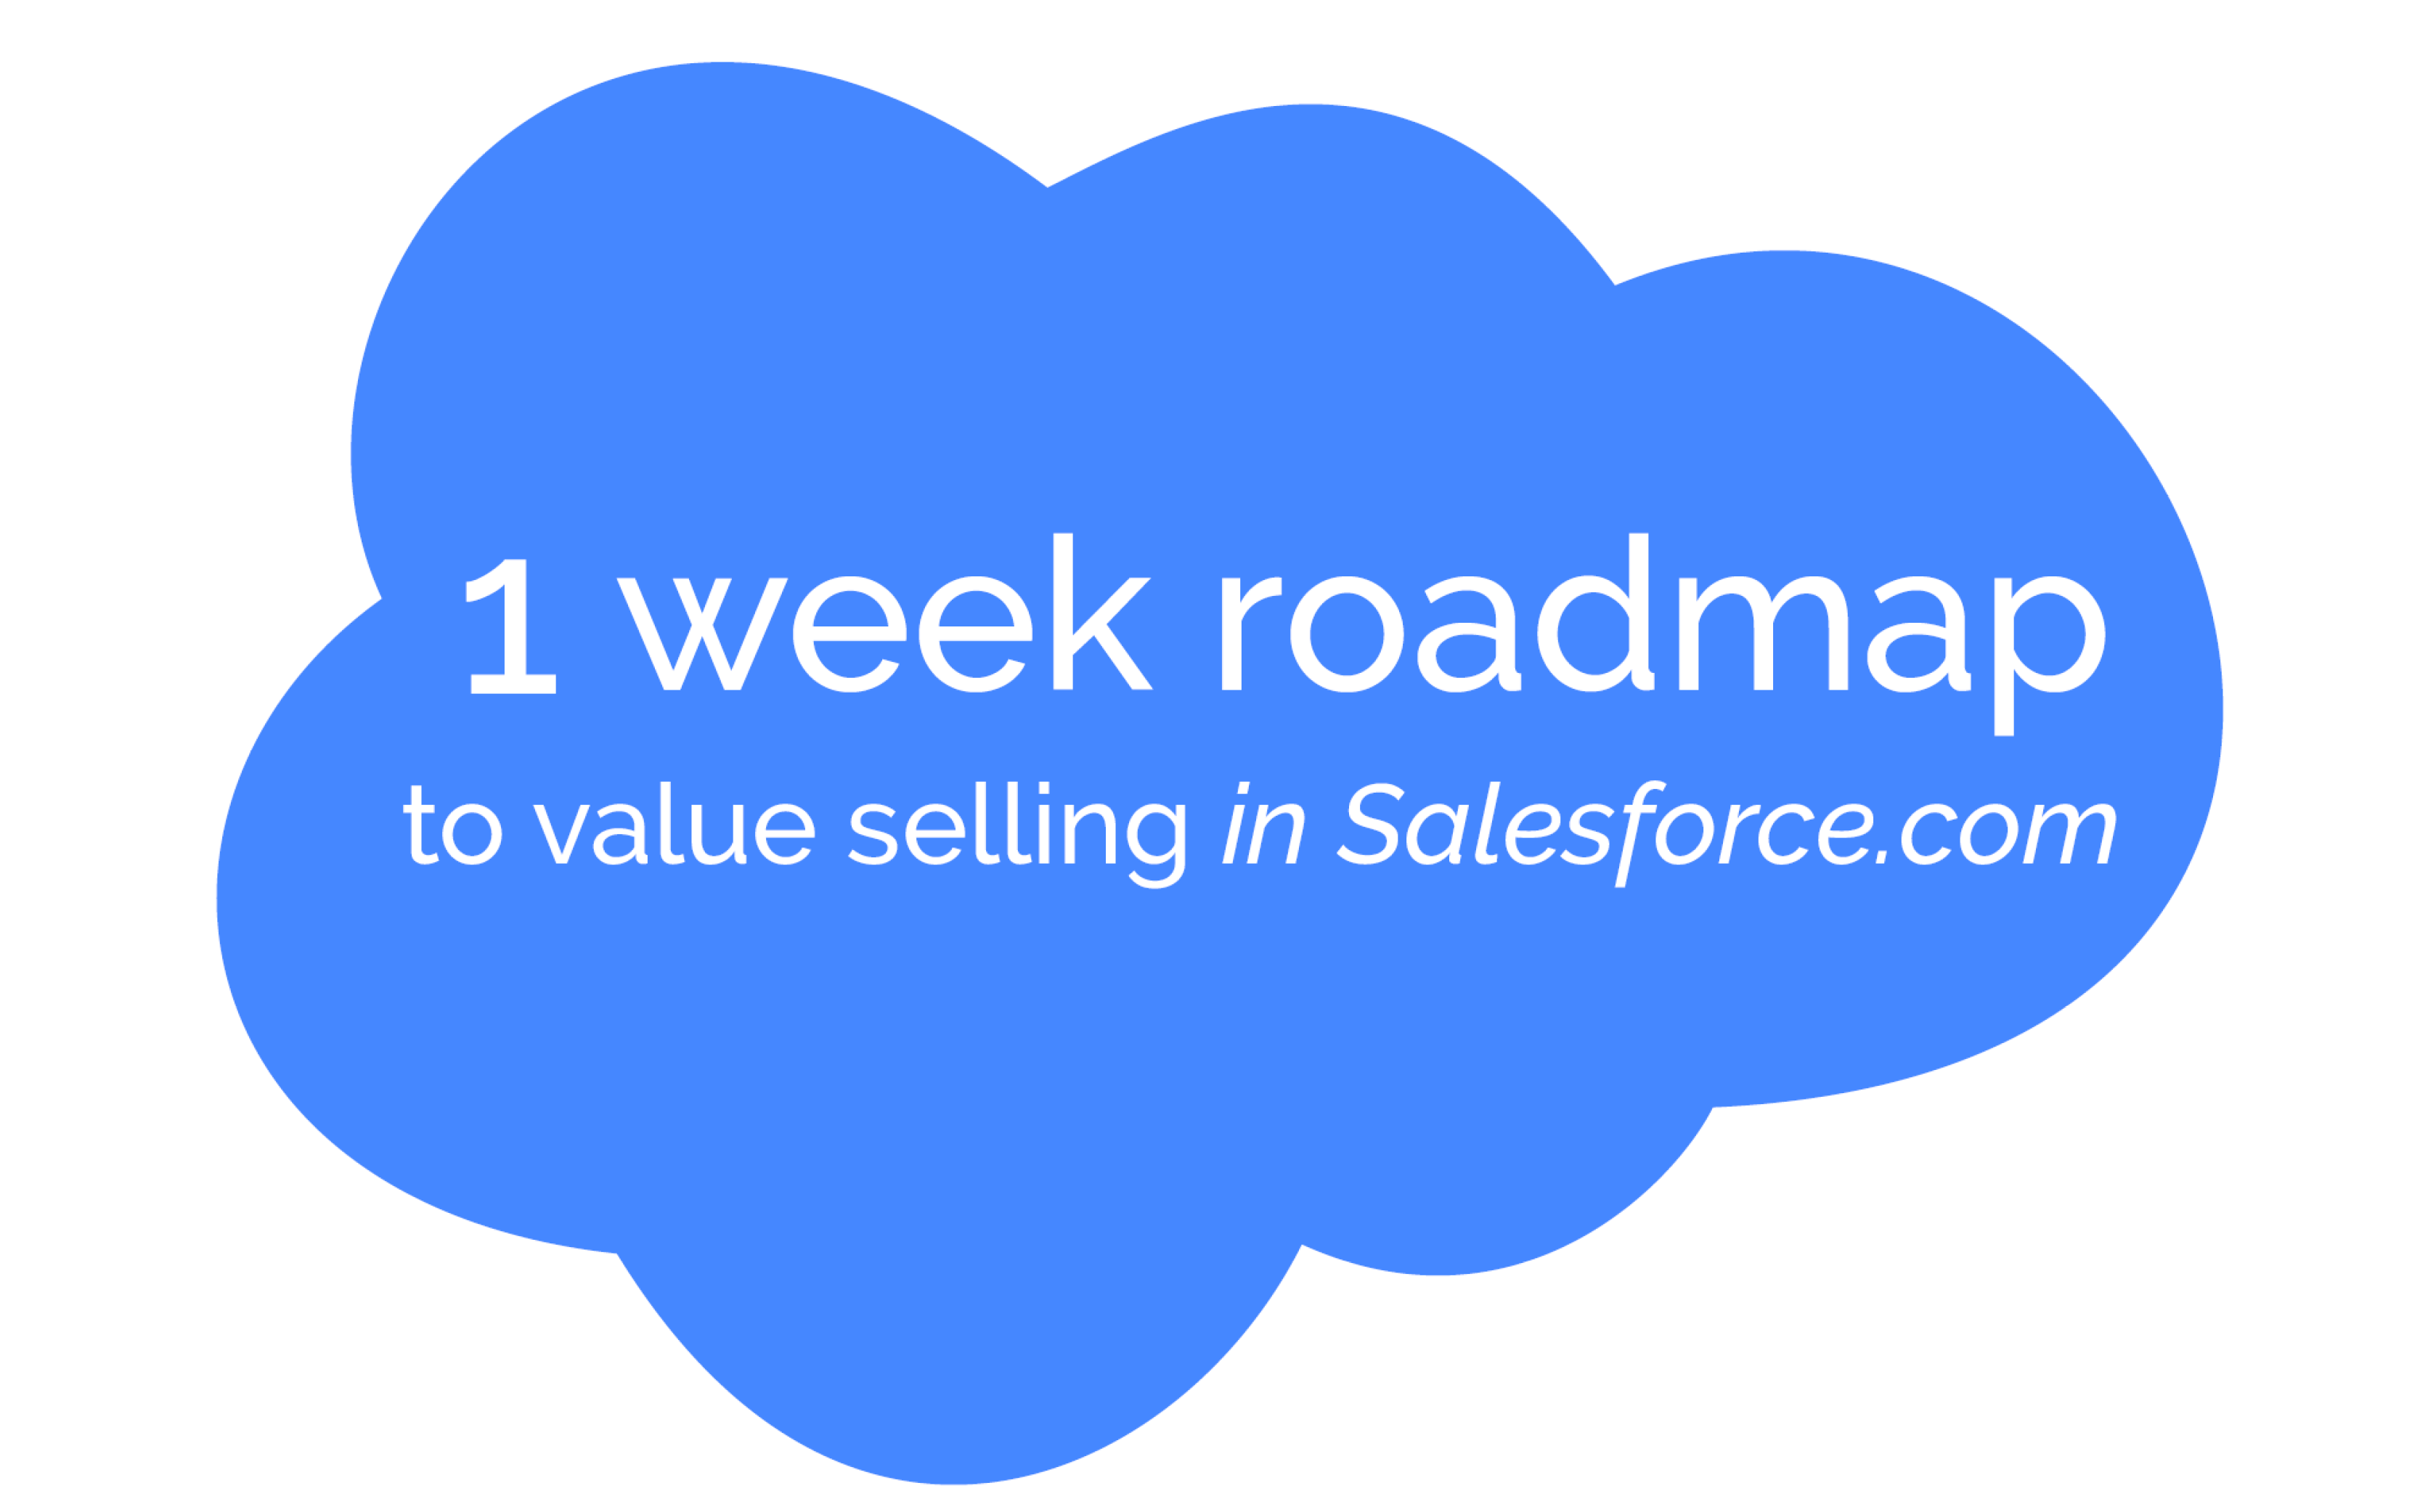 1 Week Roadmap To Value Selling In Salesforce.com